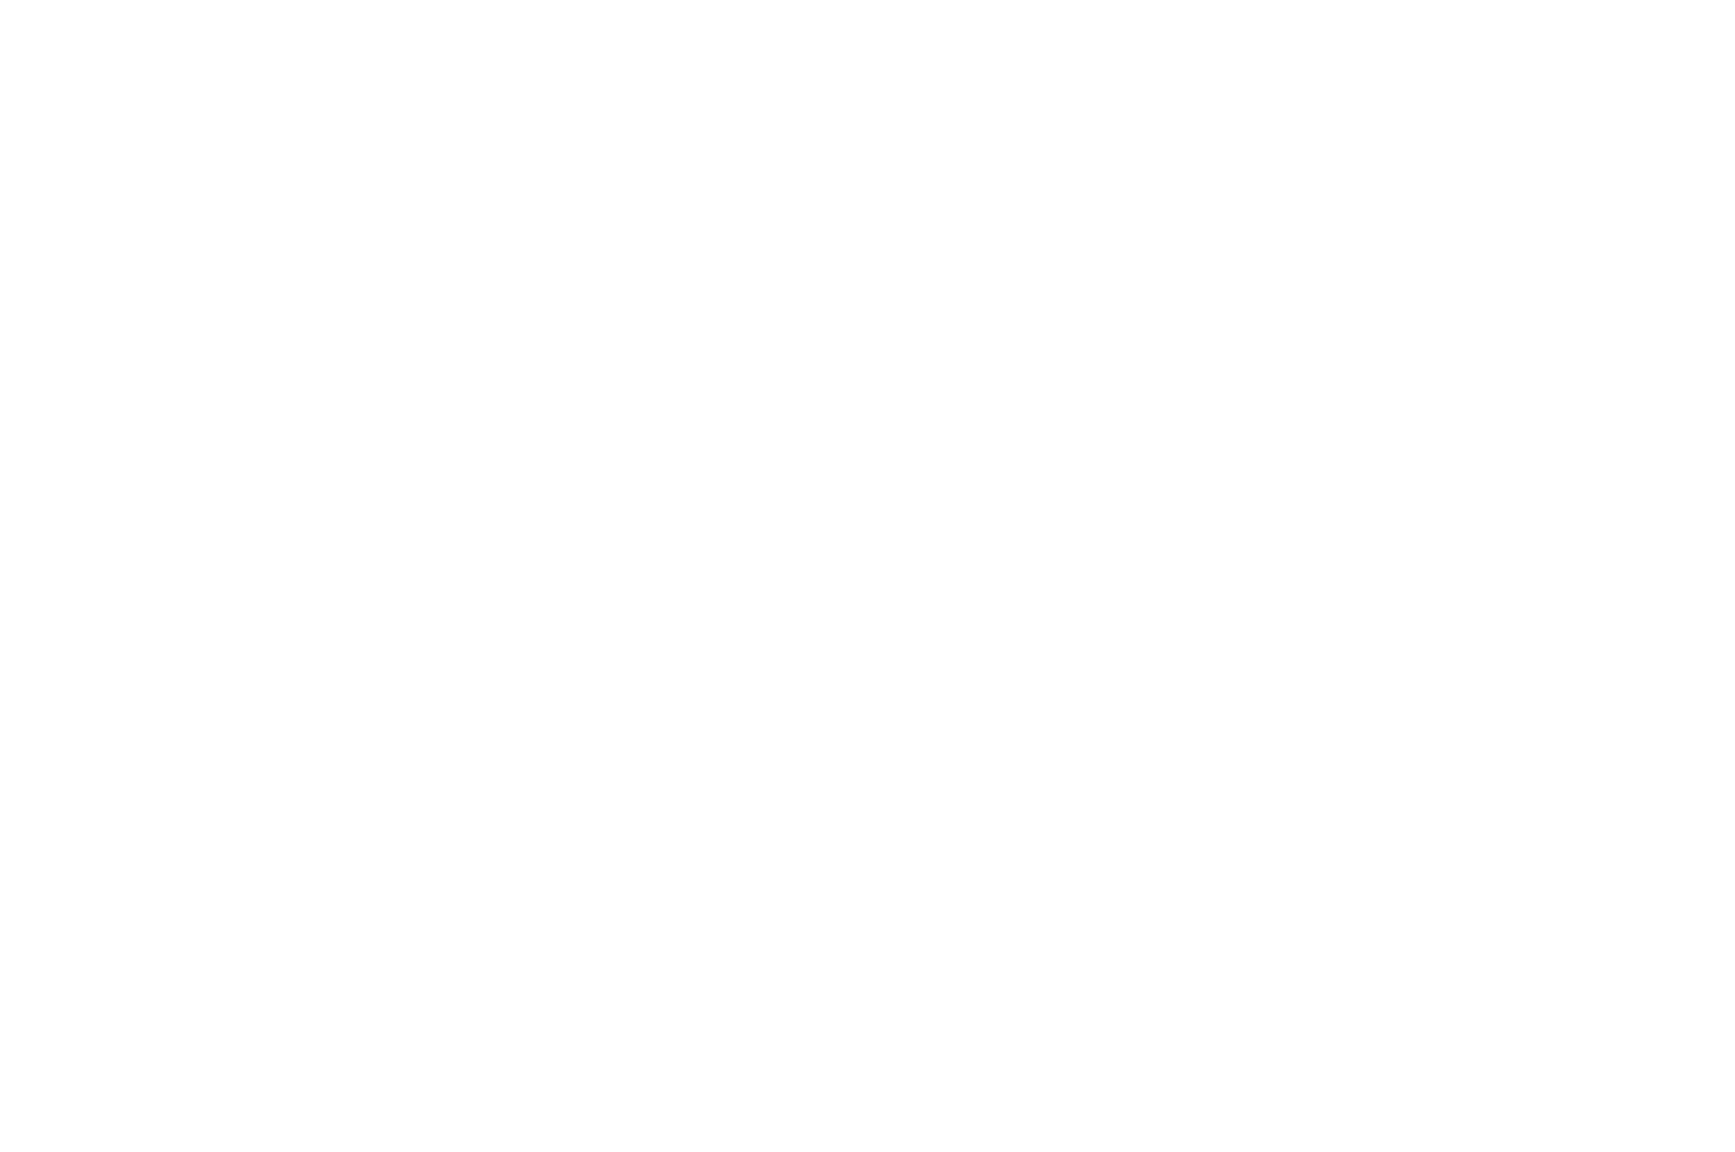 BEST DOCUMENTARY - Christian Film Festival - 2017 (1).png